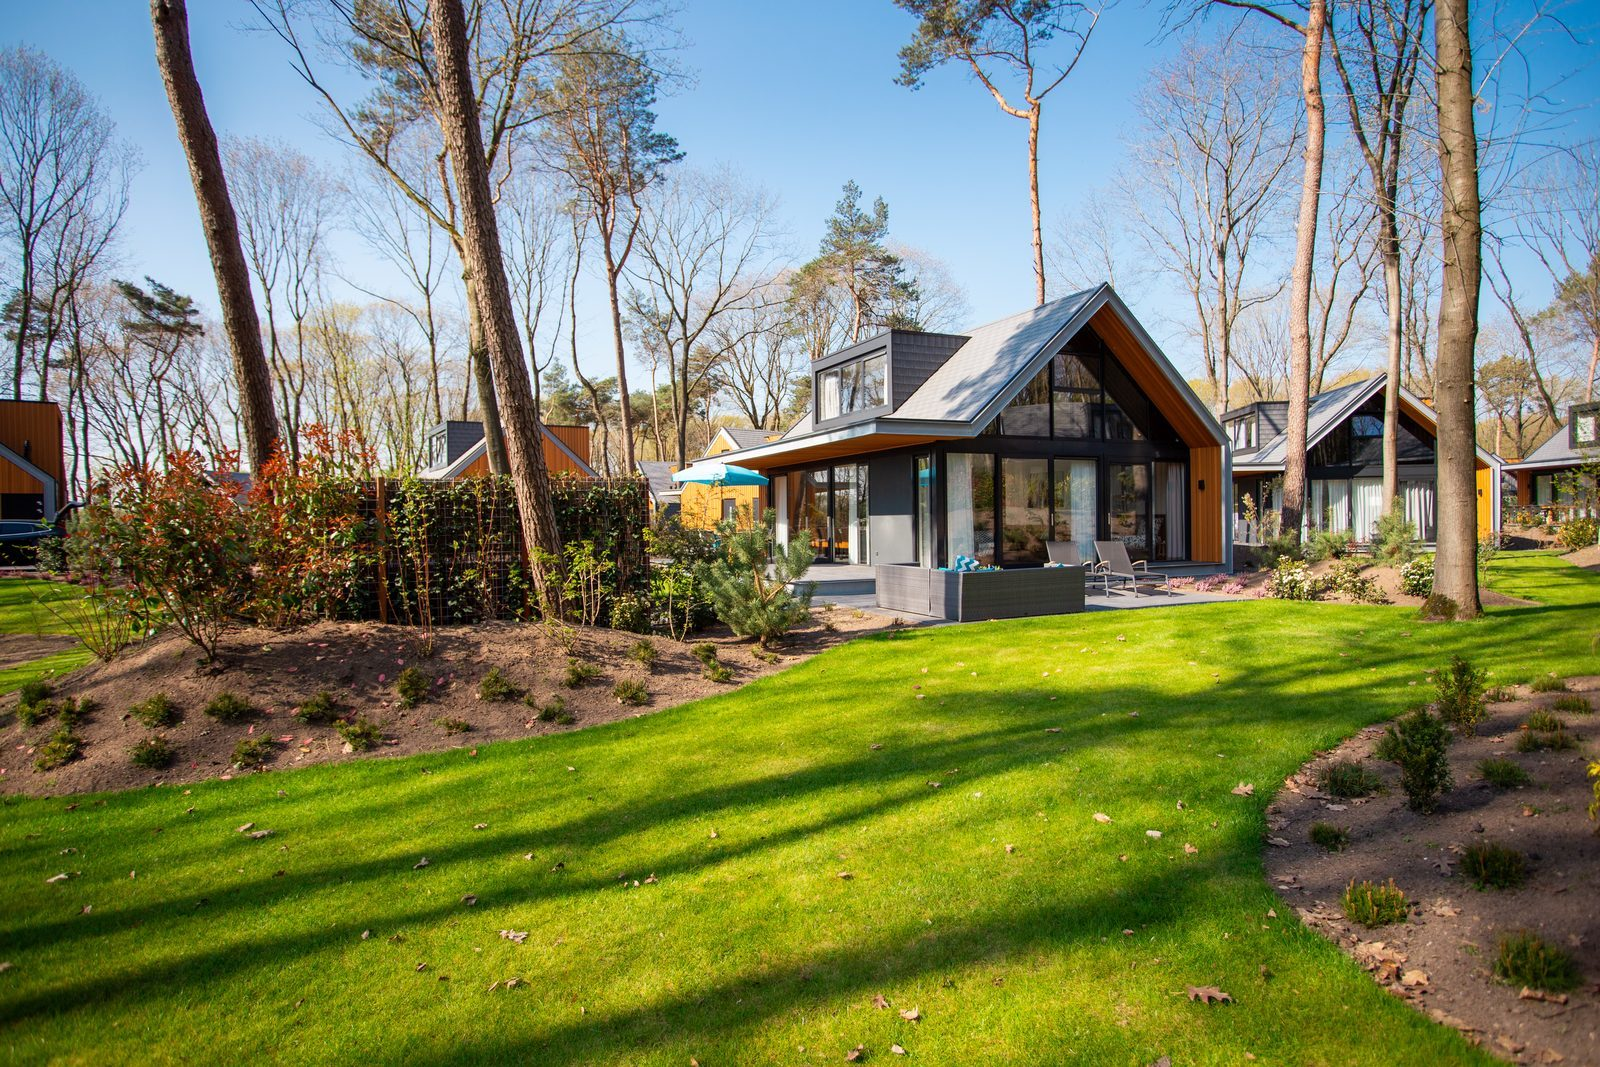 11 until 13 May Open House Days on the Veluwe